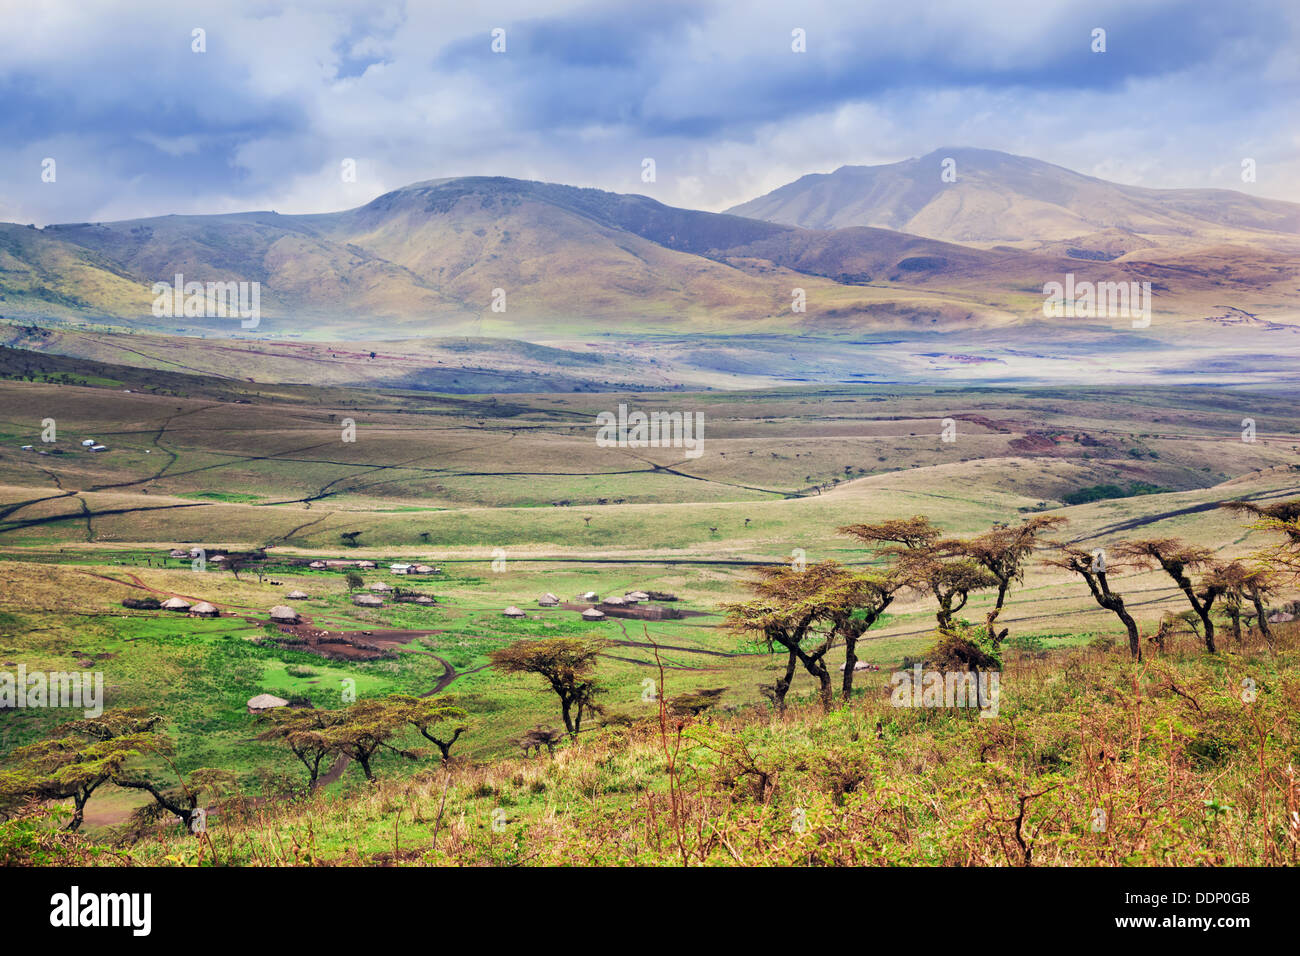 Landscape, Africa -  Savannah landscape in Tanzania, Africa. Maasai houses in the valley - Stock Image